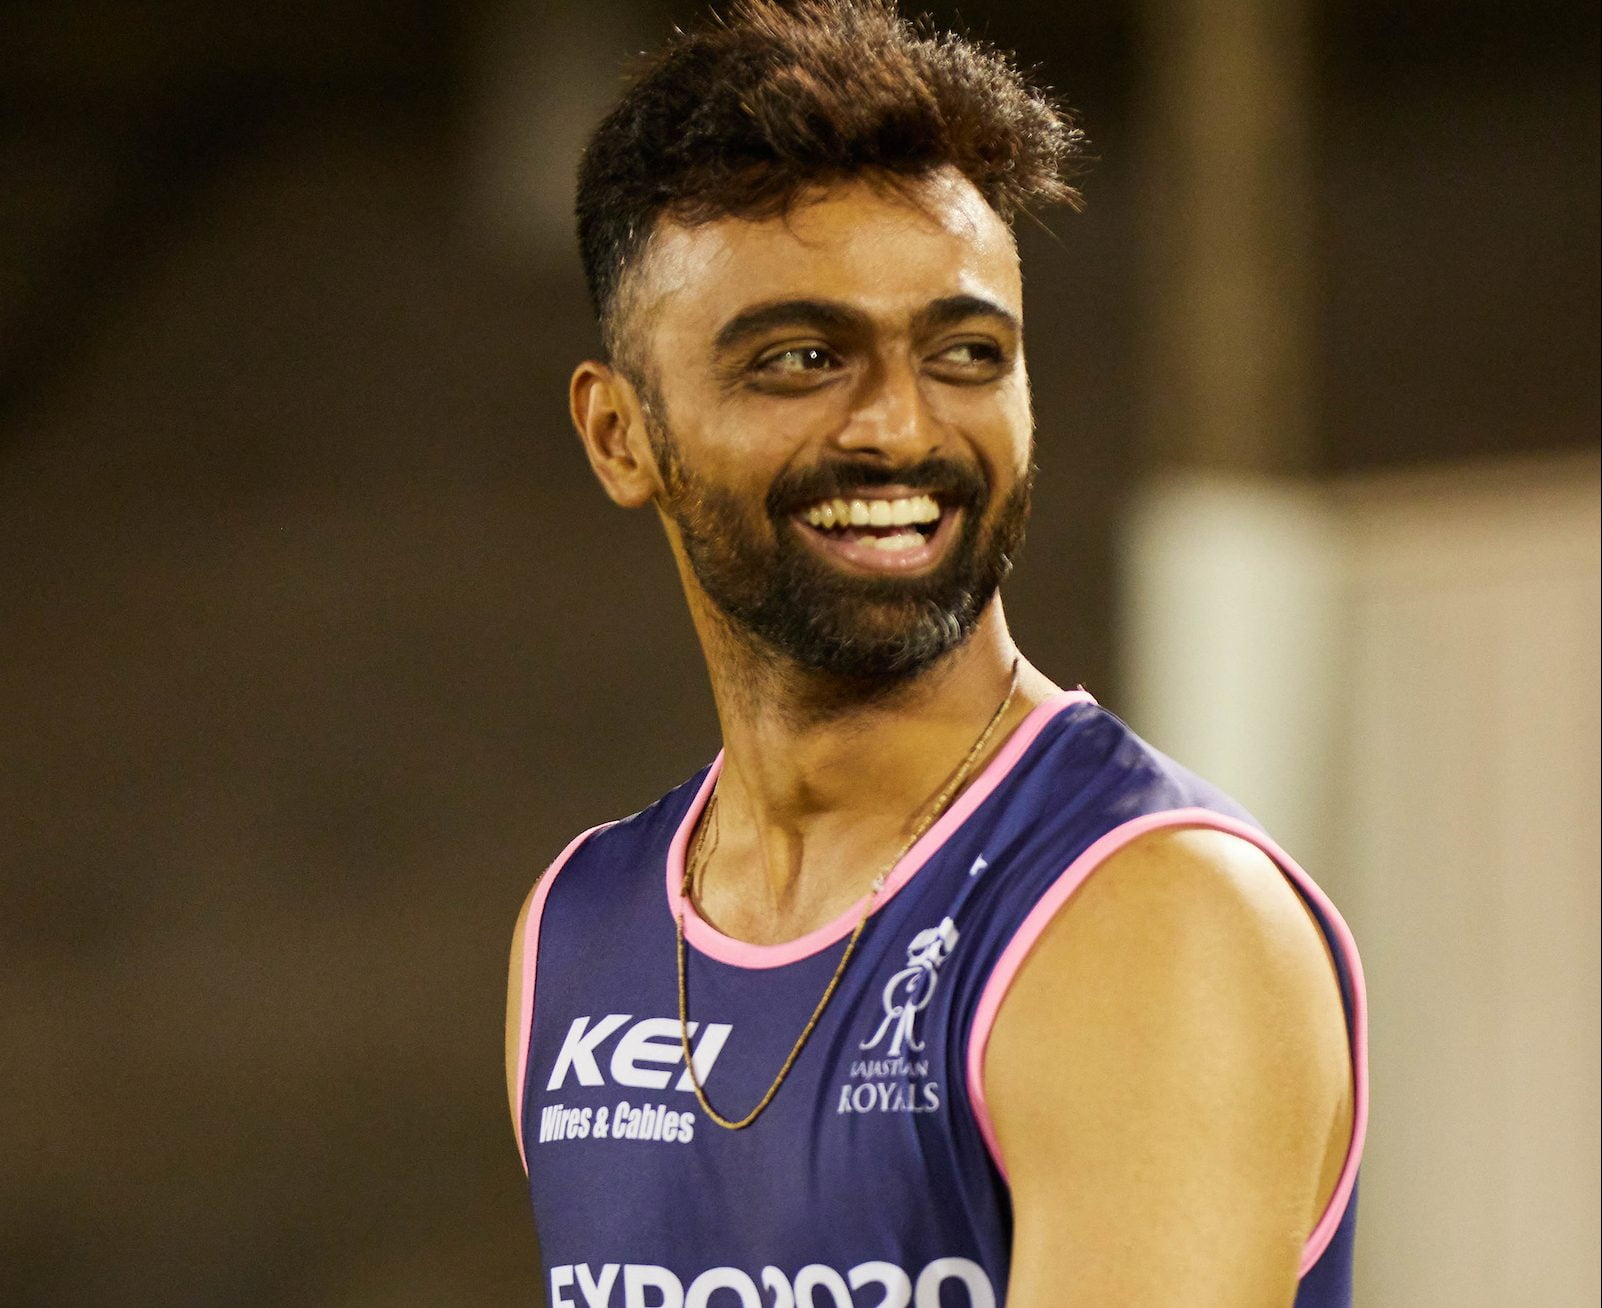 IPL 2021: Have made few changes in my action, says Jaydev Unadkat